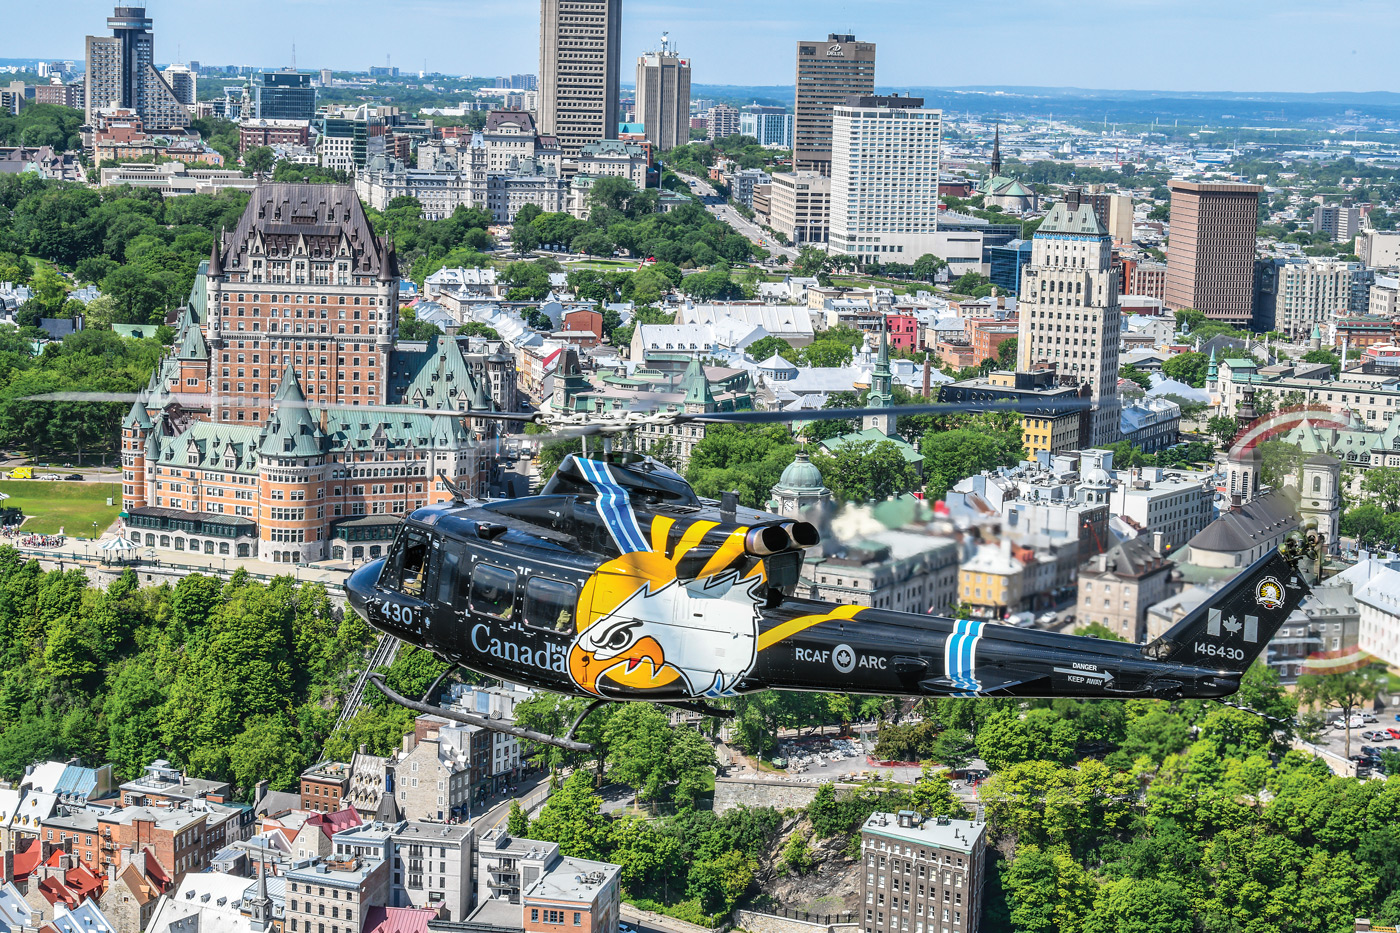 The 430 Squadron anniversary bird soars over Quebec City. PHOTO: © Mike Reyno, RCAF Today